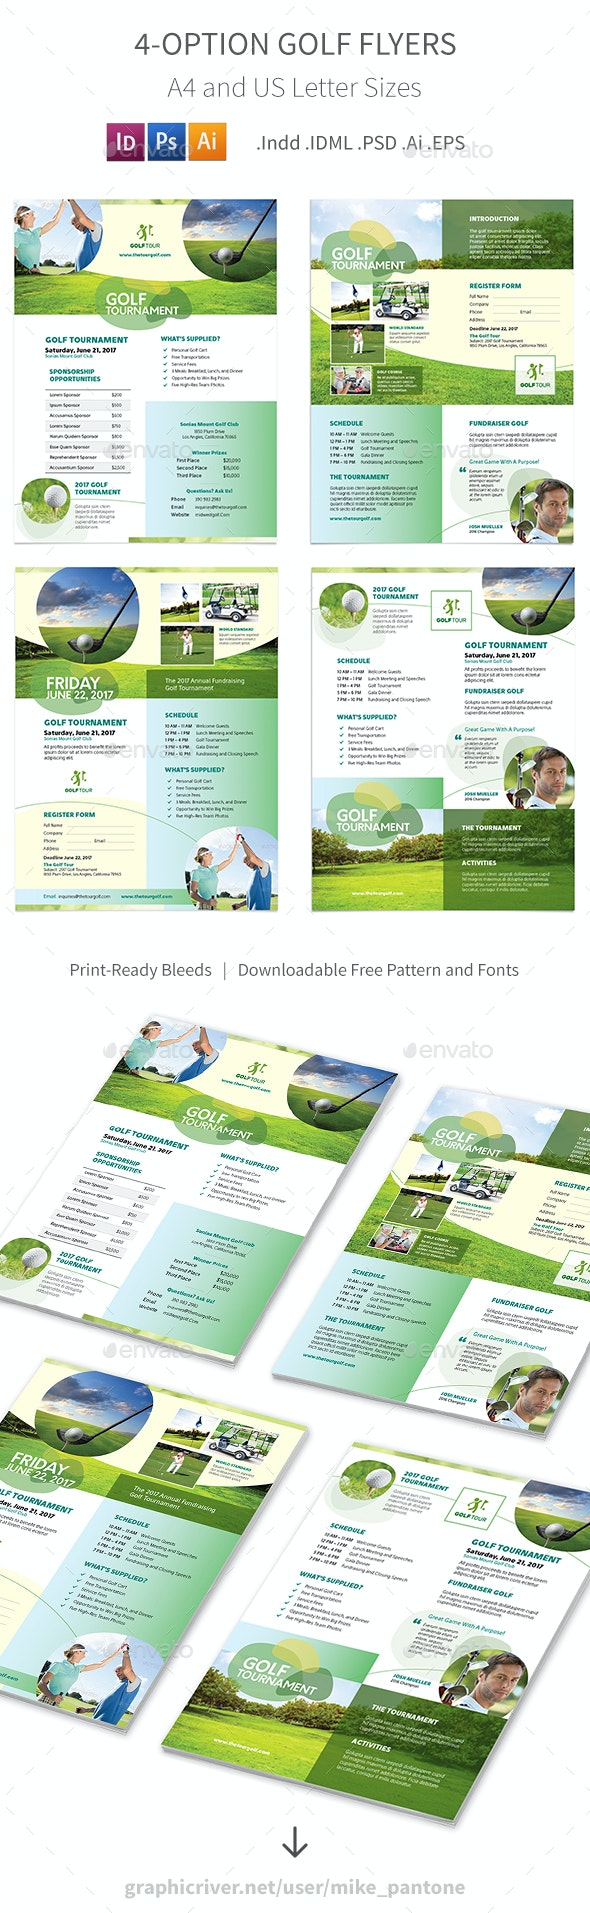 Golf Flyers 6 – 4 Options - Corporate Flyers